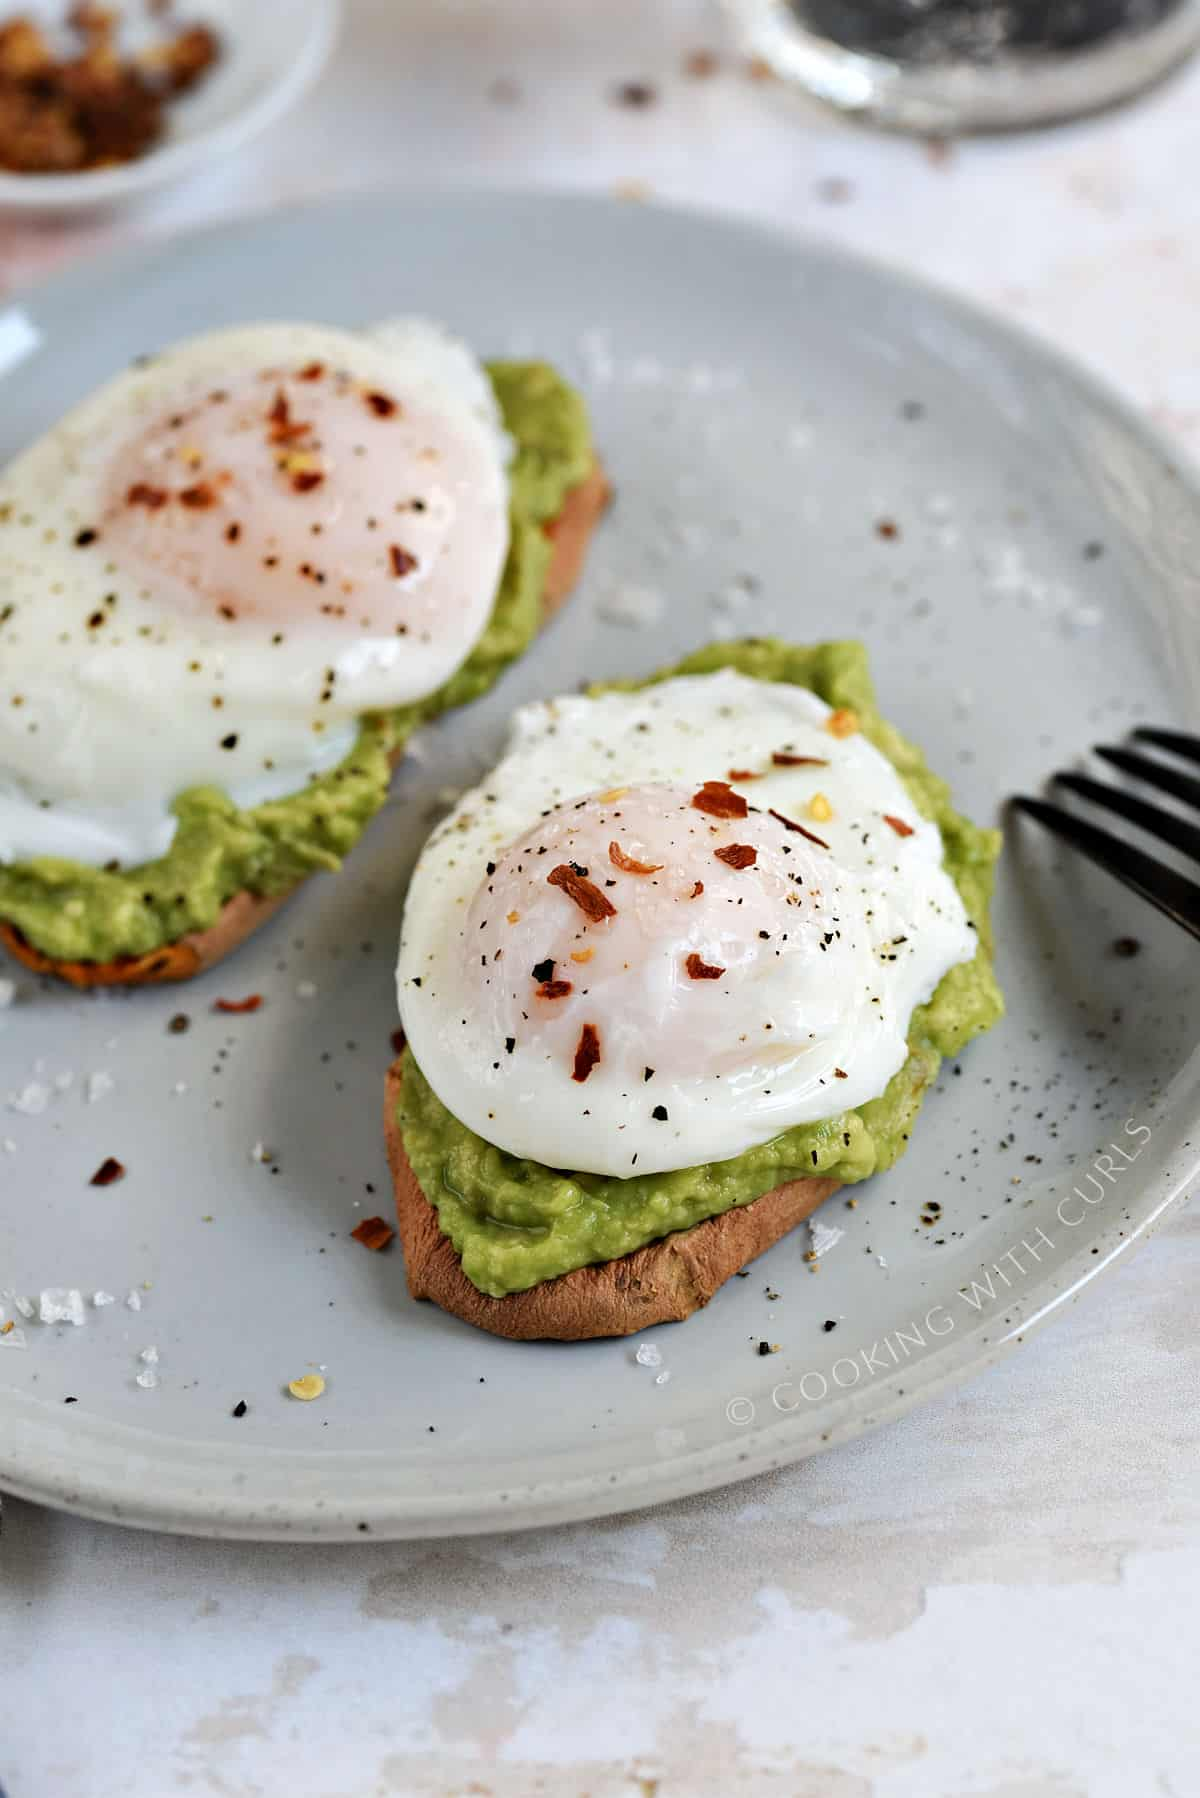 Close-up image of two poached eggs sprinkled with red pepper and salt flakes on avocado toast.